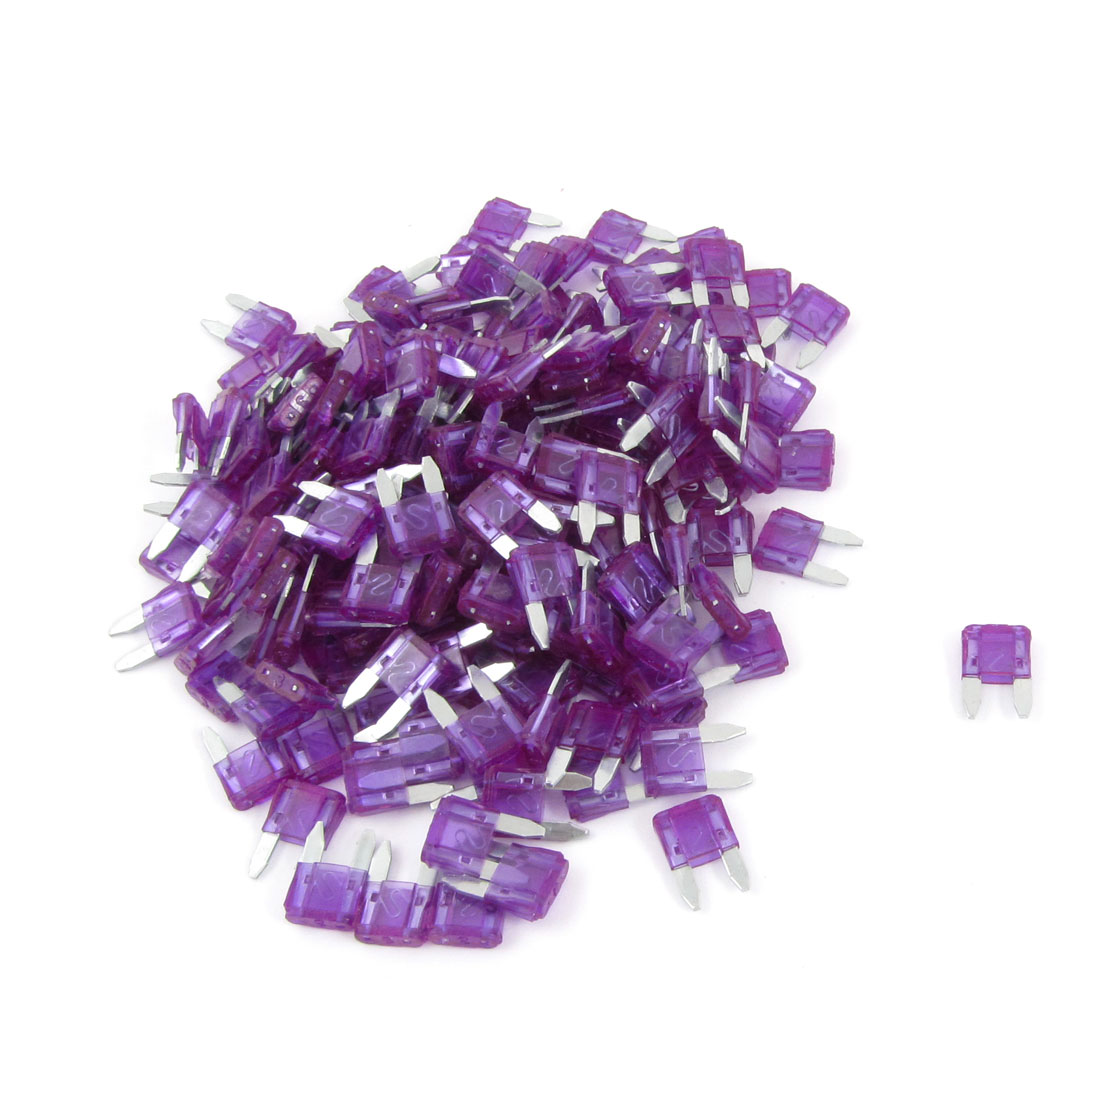 Purple 3A Auto Car Motorcycle Mini Blade Fuse 200 Pieces